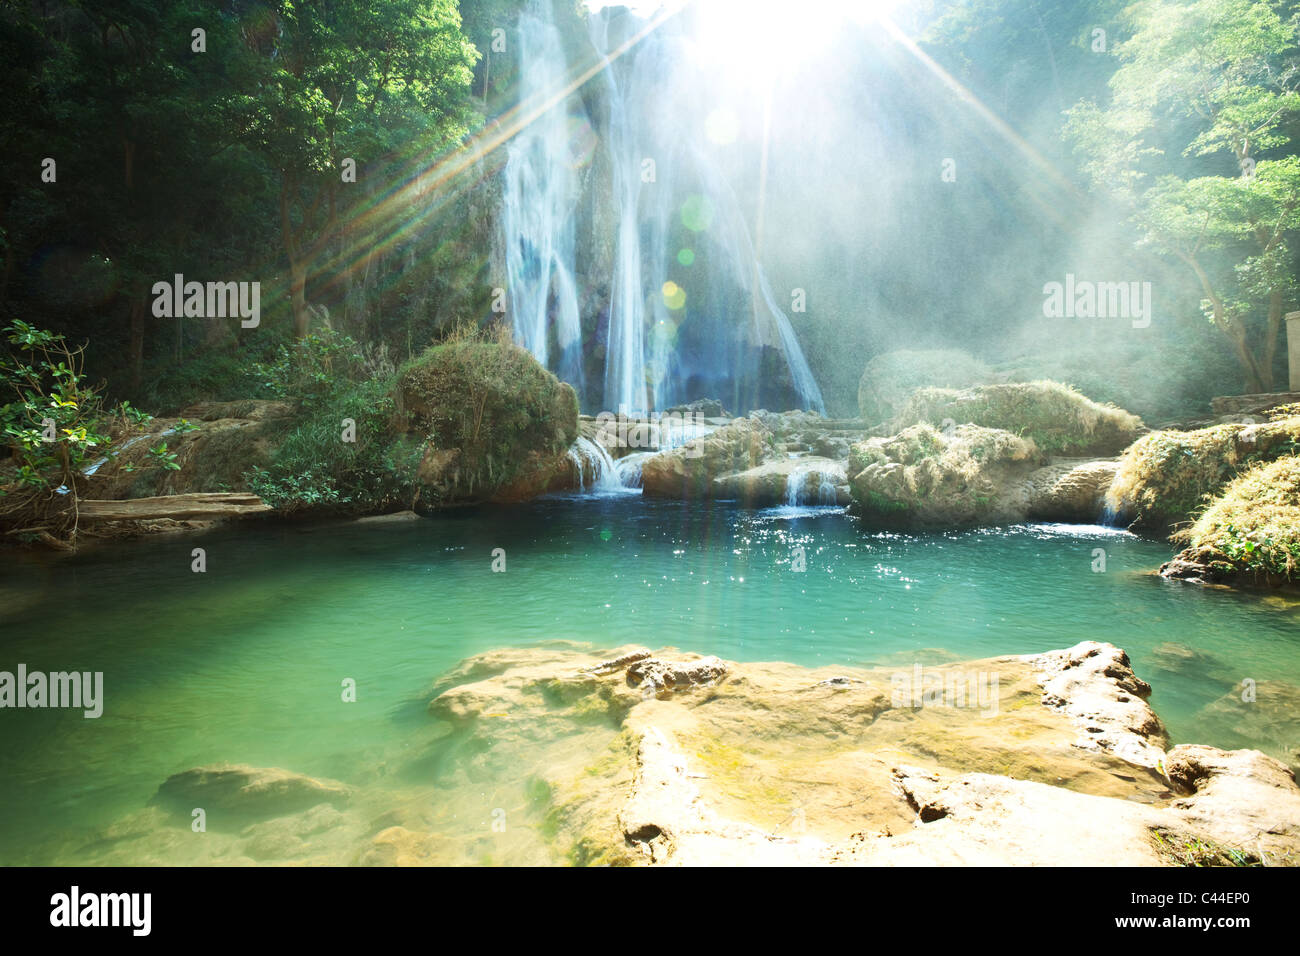 waterfall in Myanmar - Stock Image